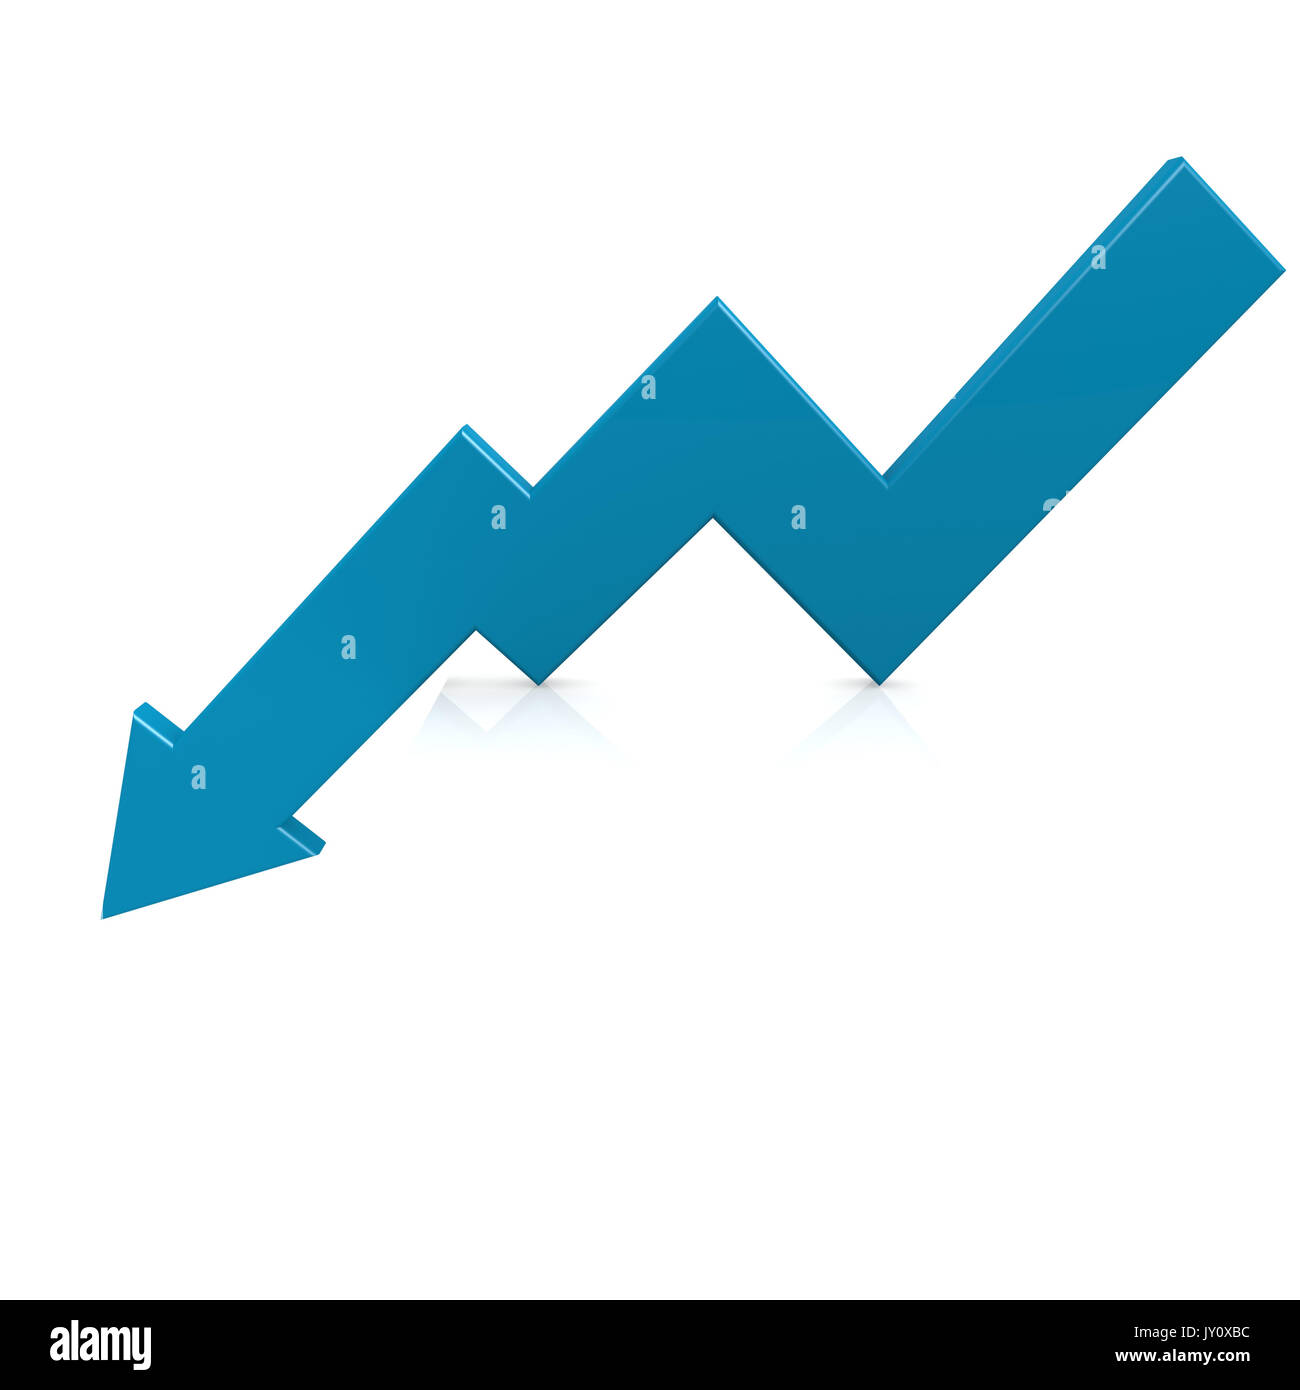 Crisis arrow blue image with hi-res rendered artwork that could be used for any graphic design. Stock Photo